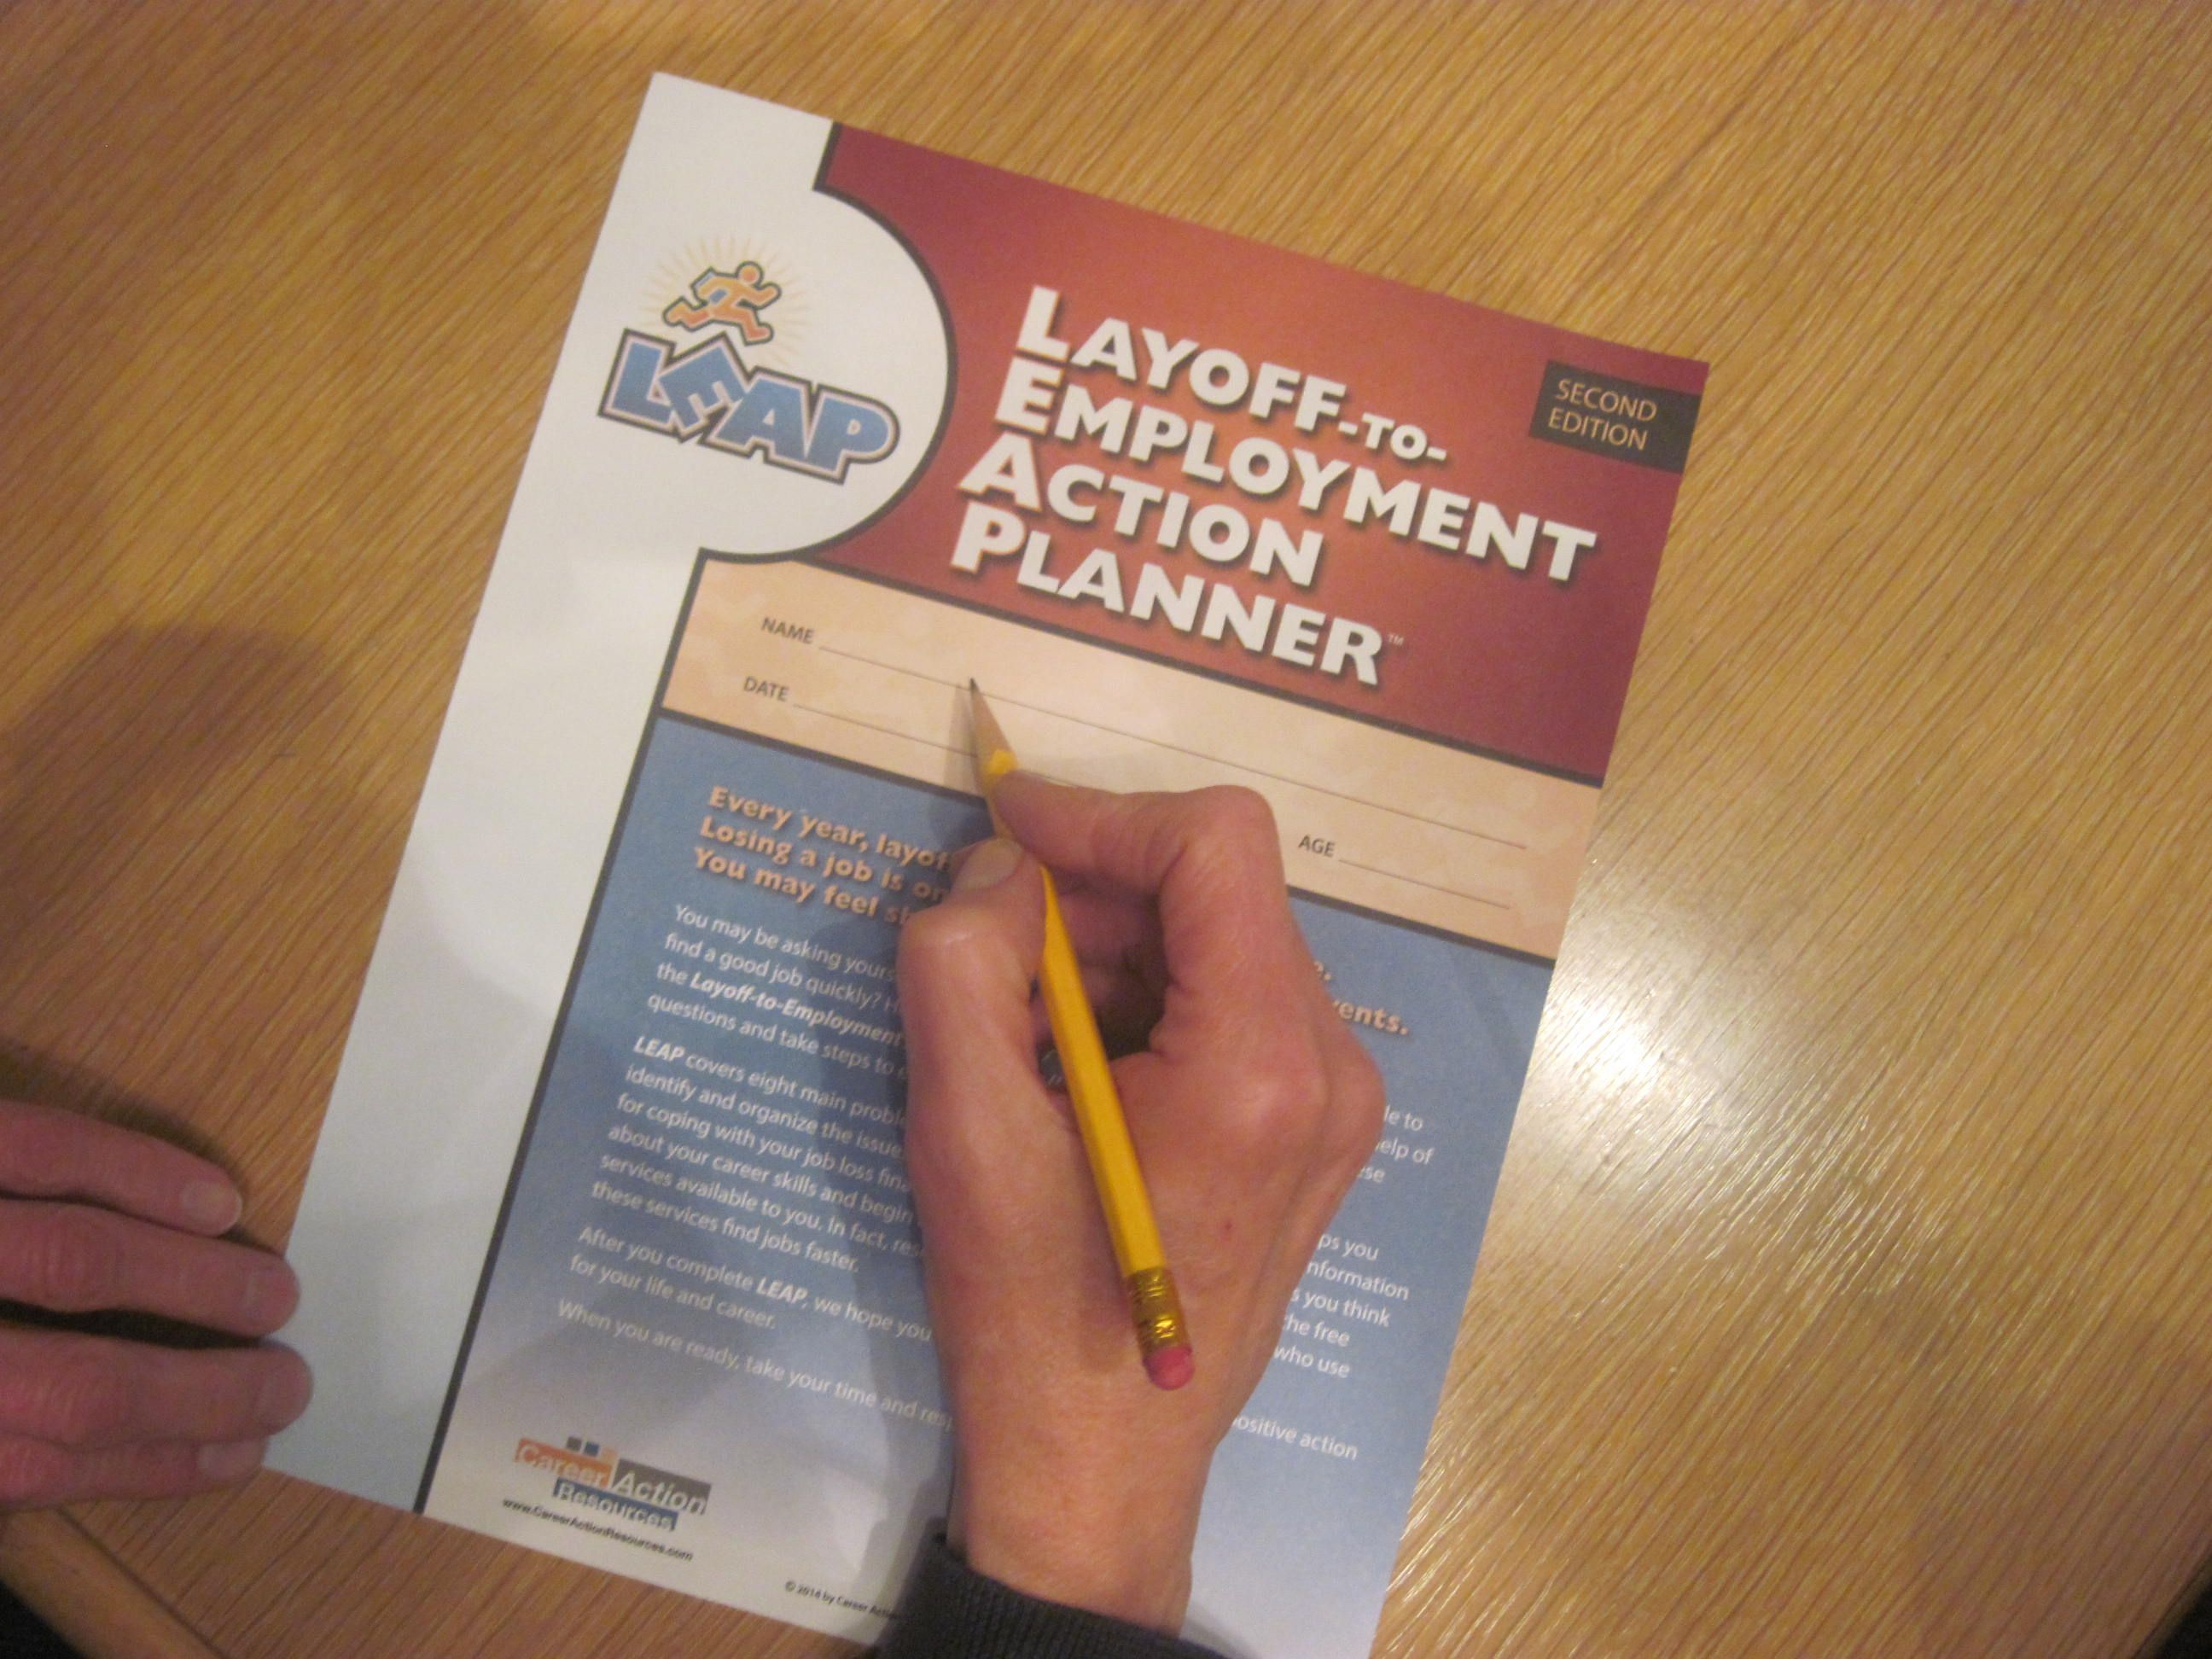 LayofftoEmployment Action Planner review samples will be